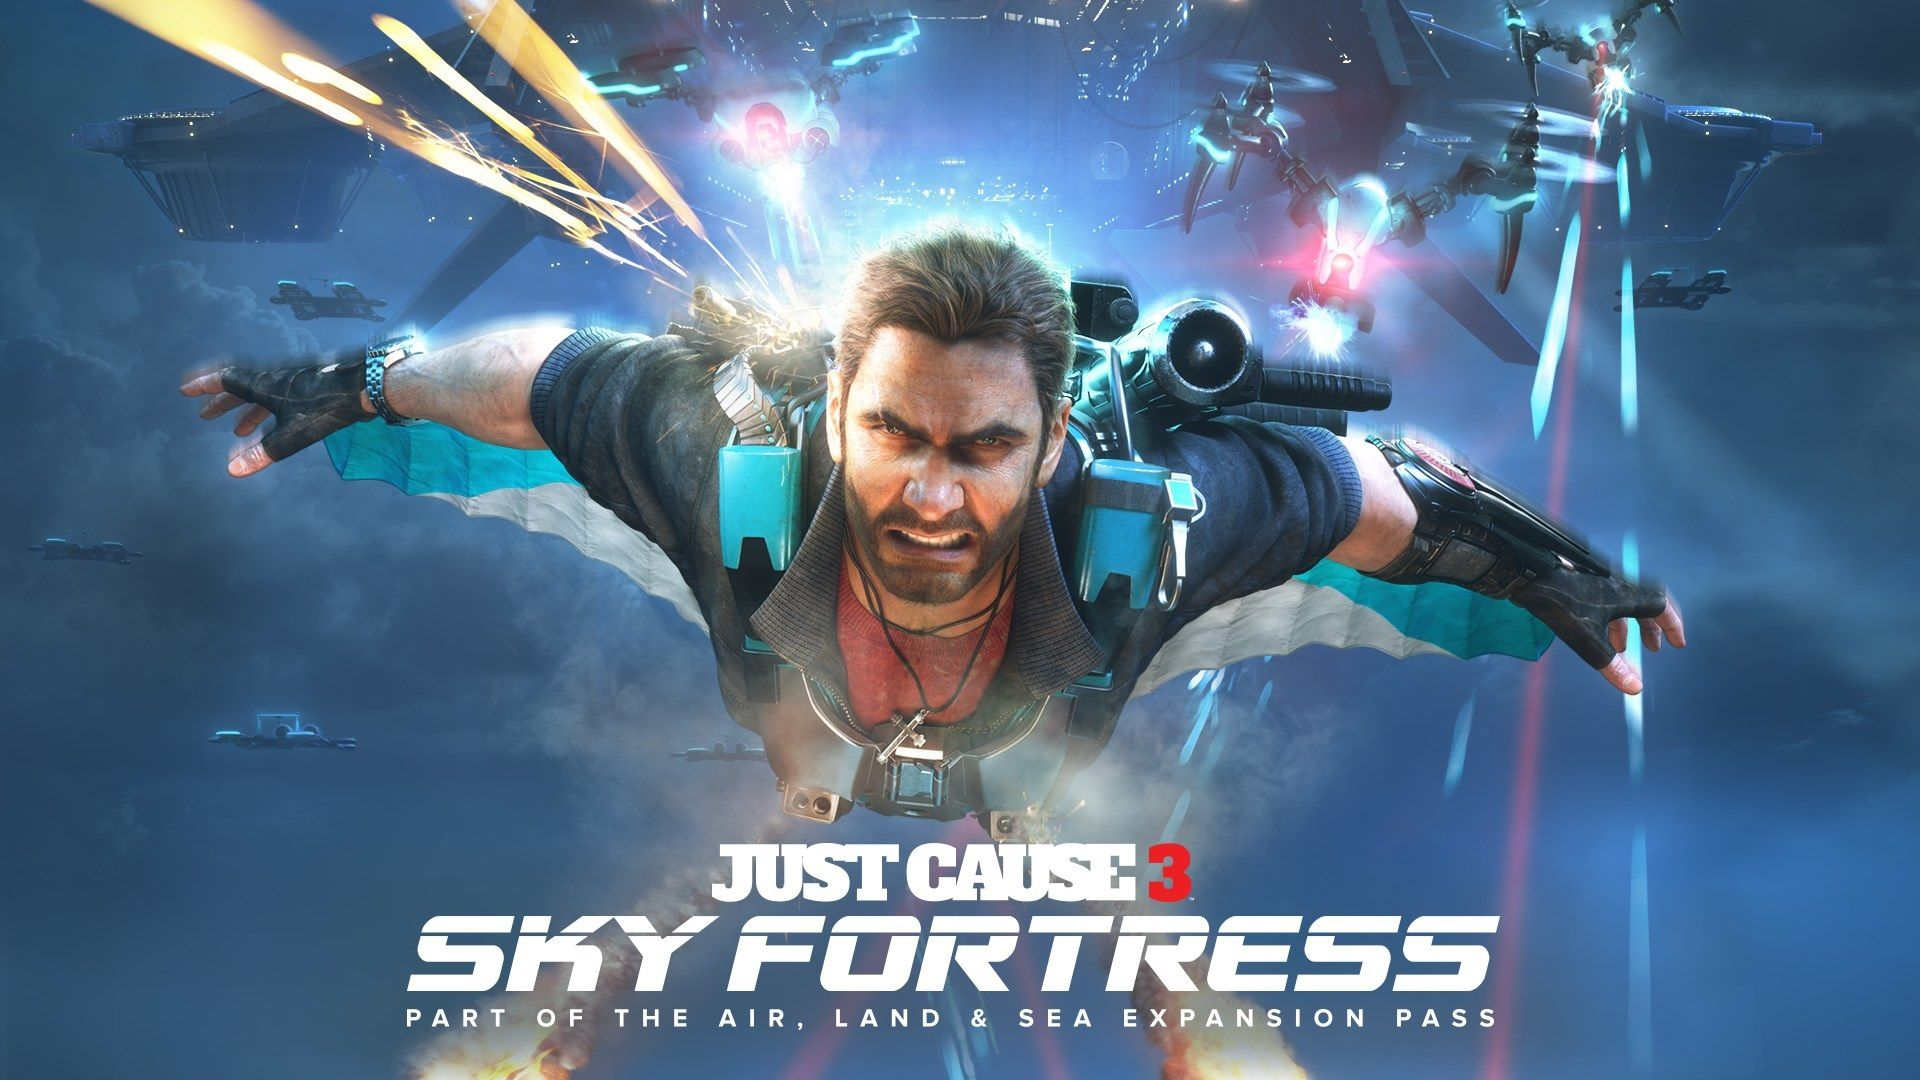 1920x1080 Just Cause 3 Wallpaper Download Free For Pc Hd Just Cause 3 Master Tour Dark Souls